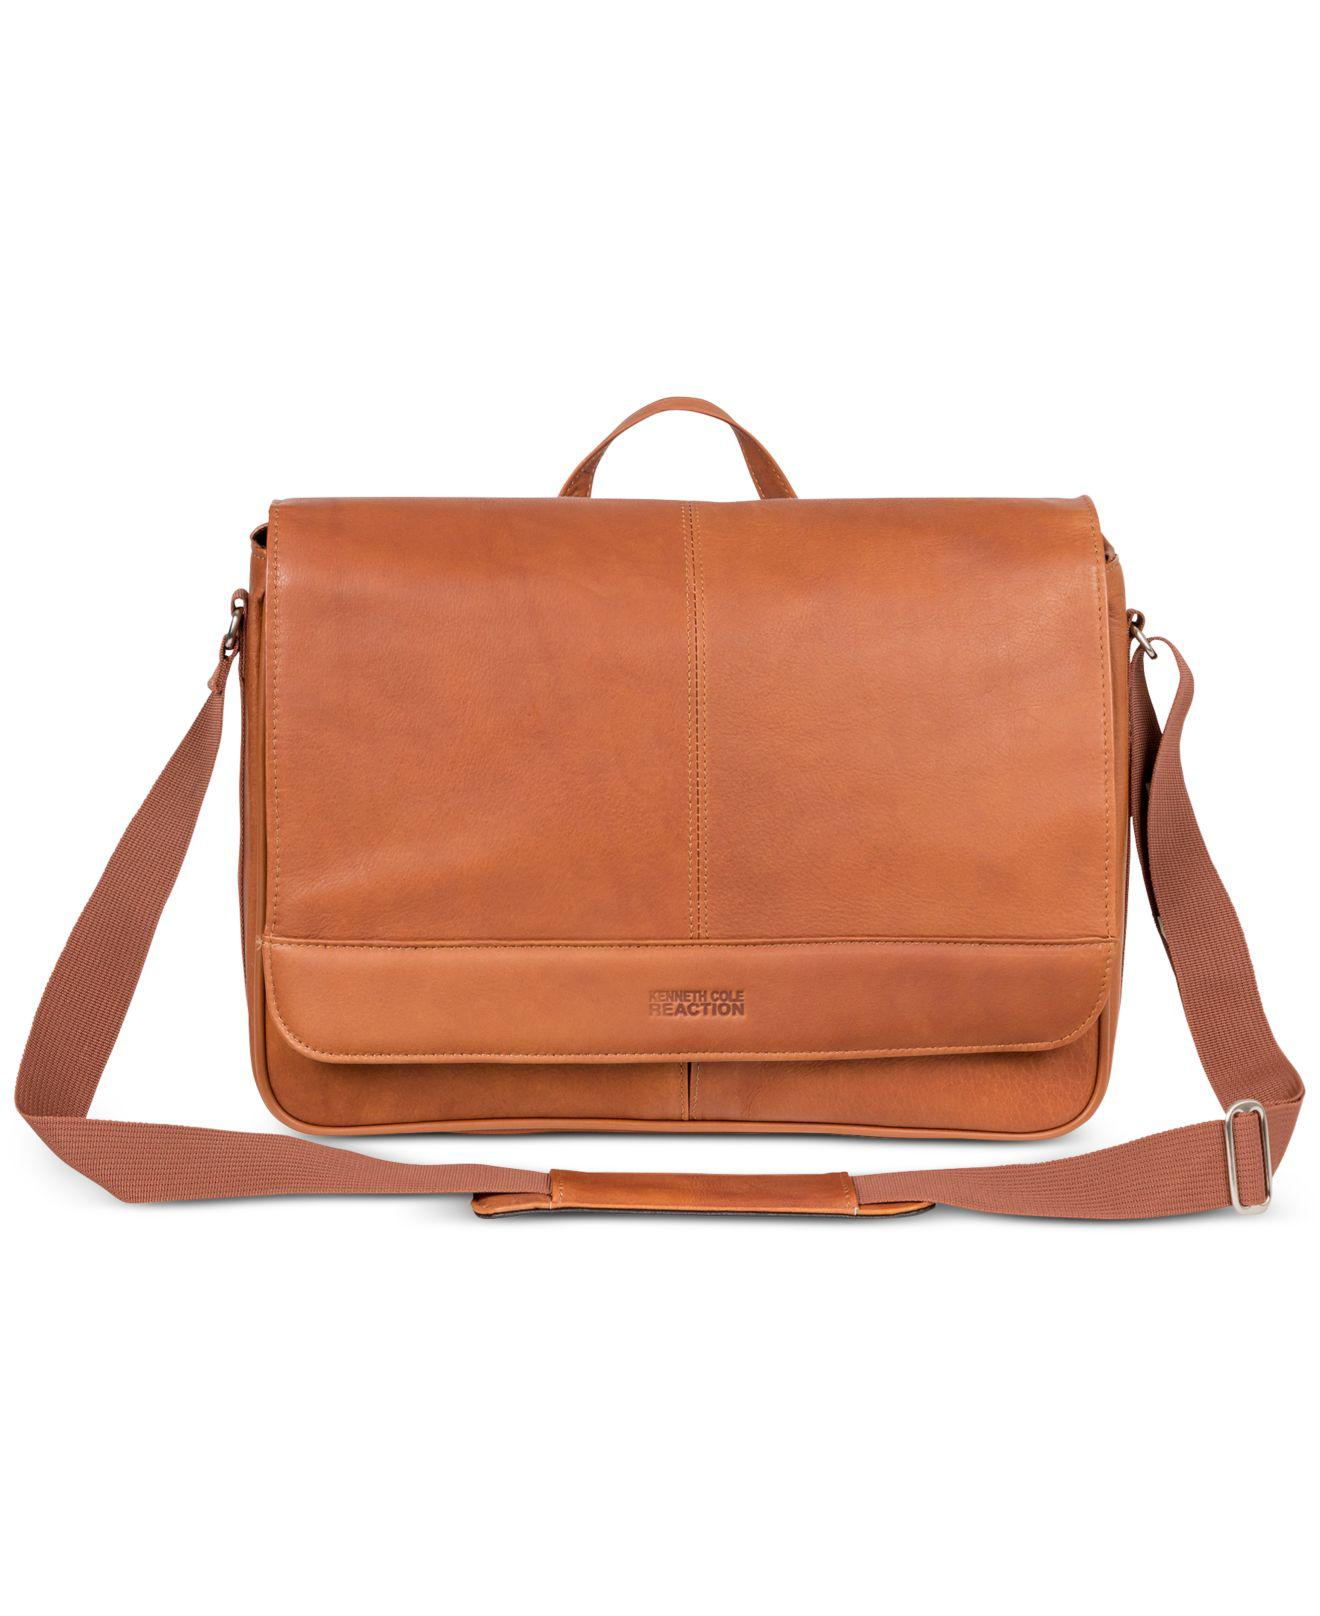 Kenneth Cole Reaction - Brown